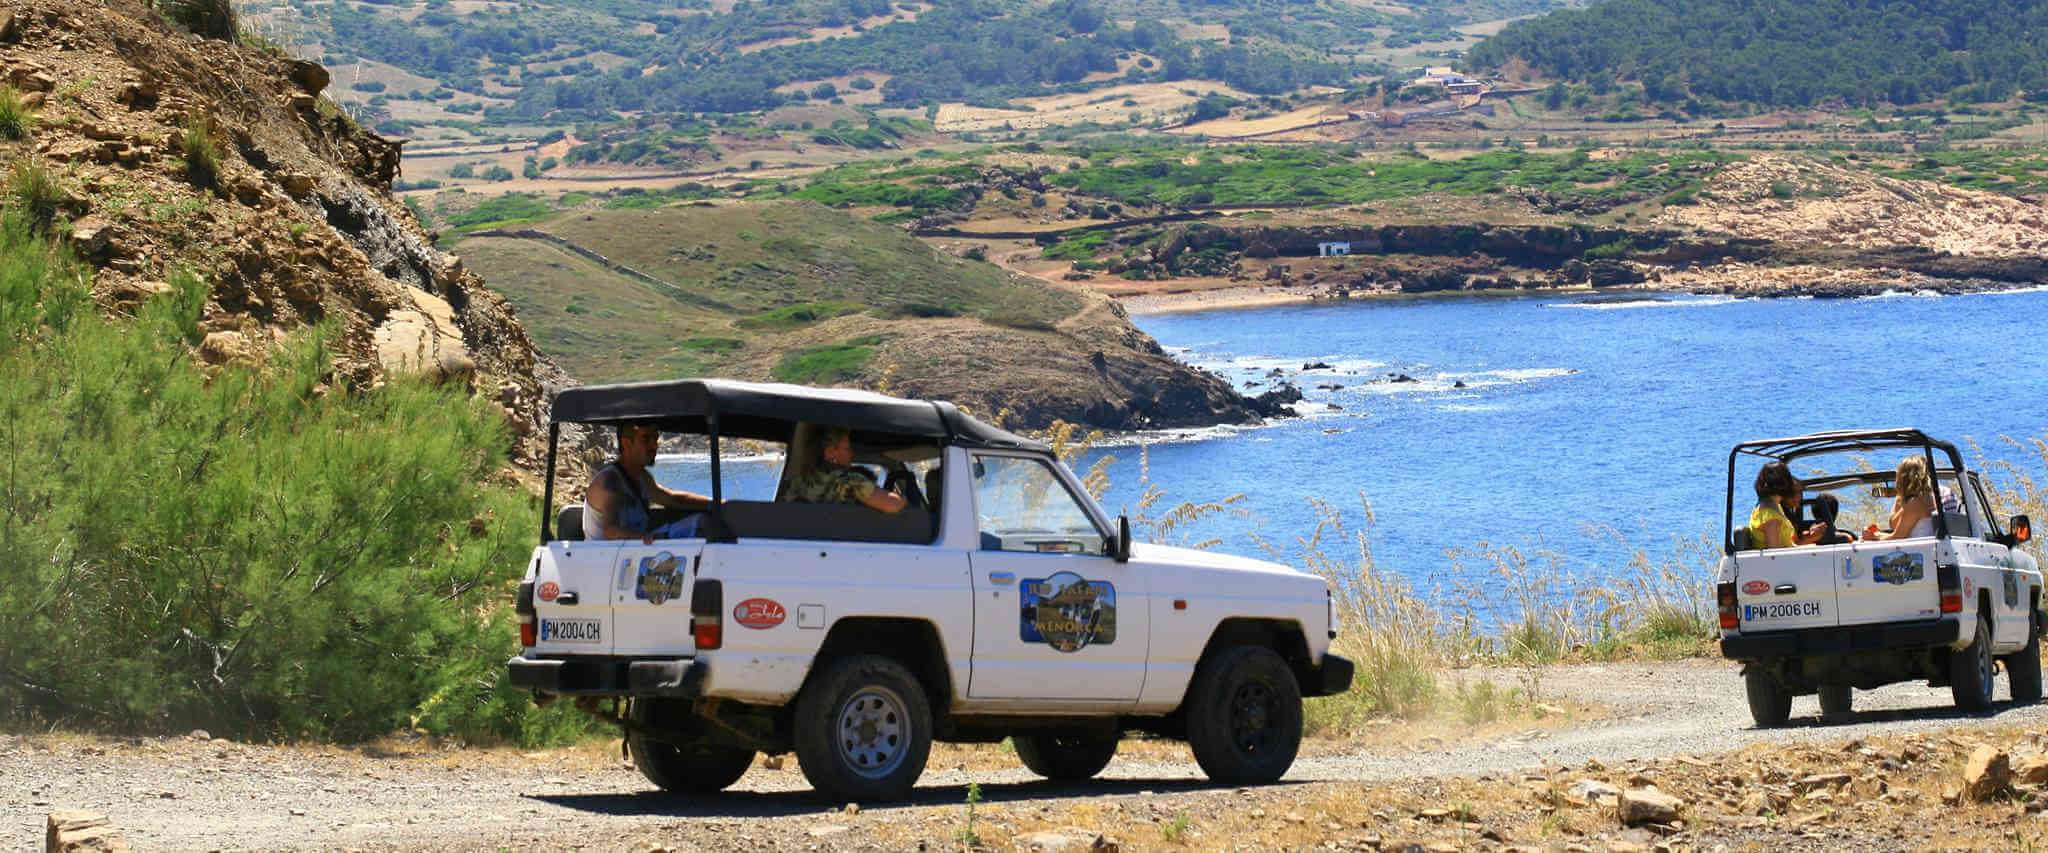 The best jeep safari in Menorca